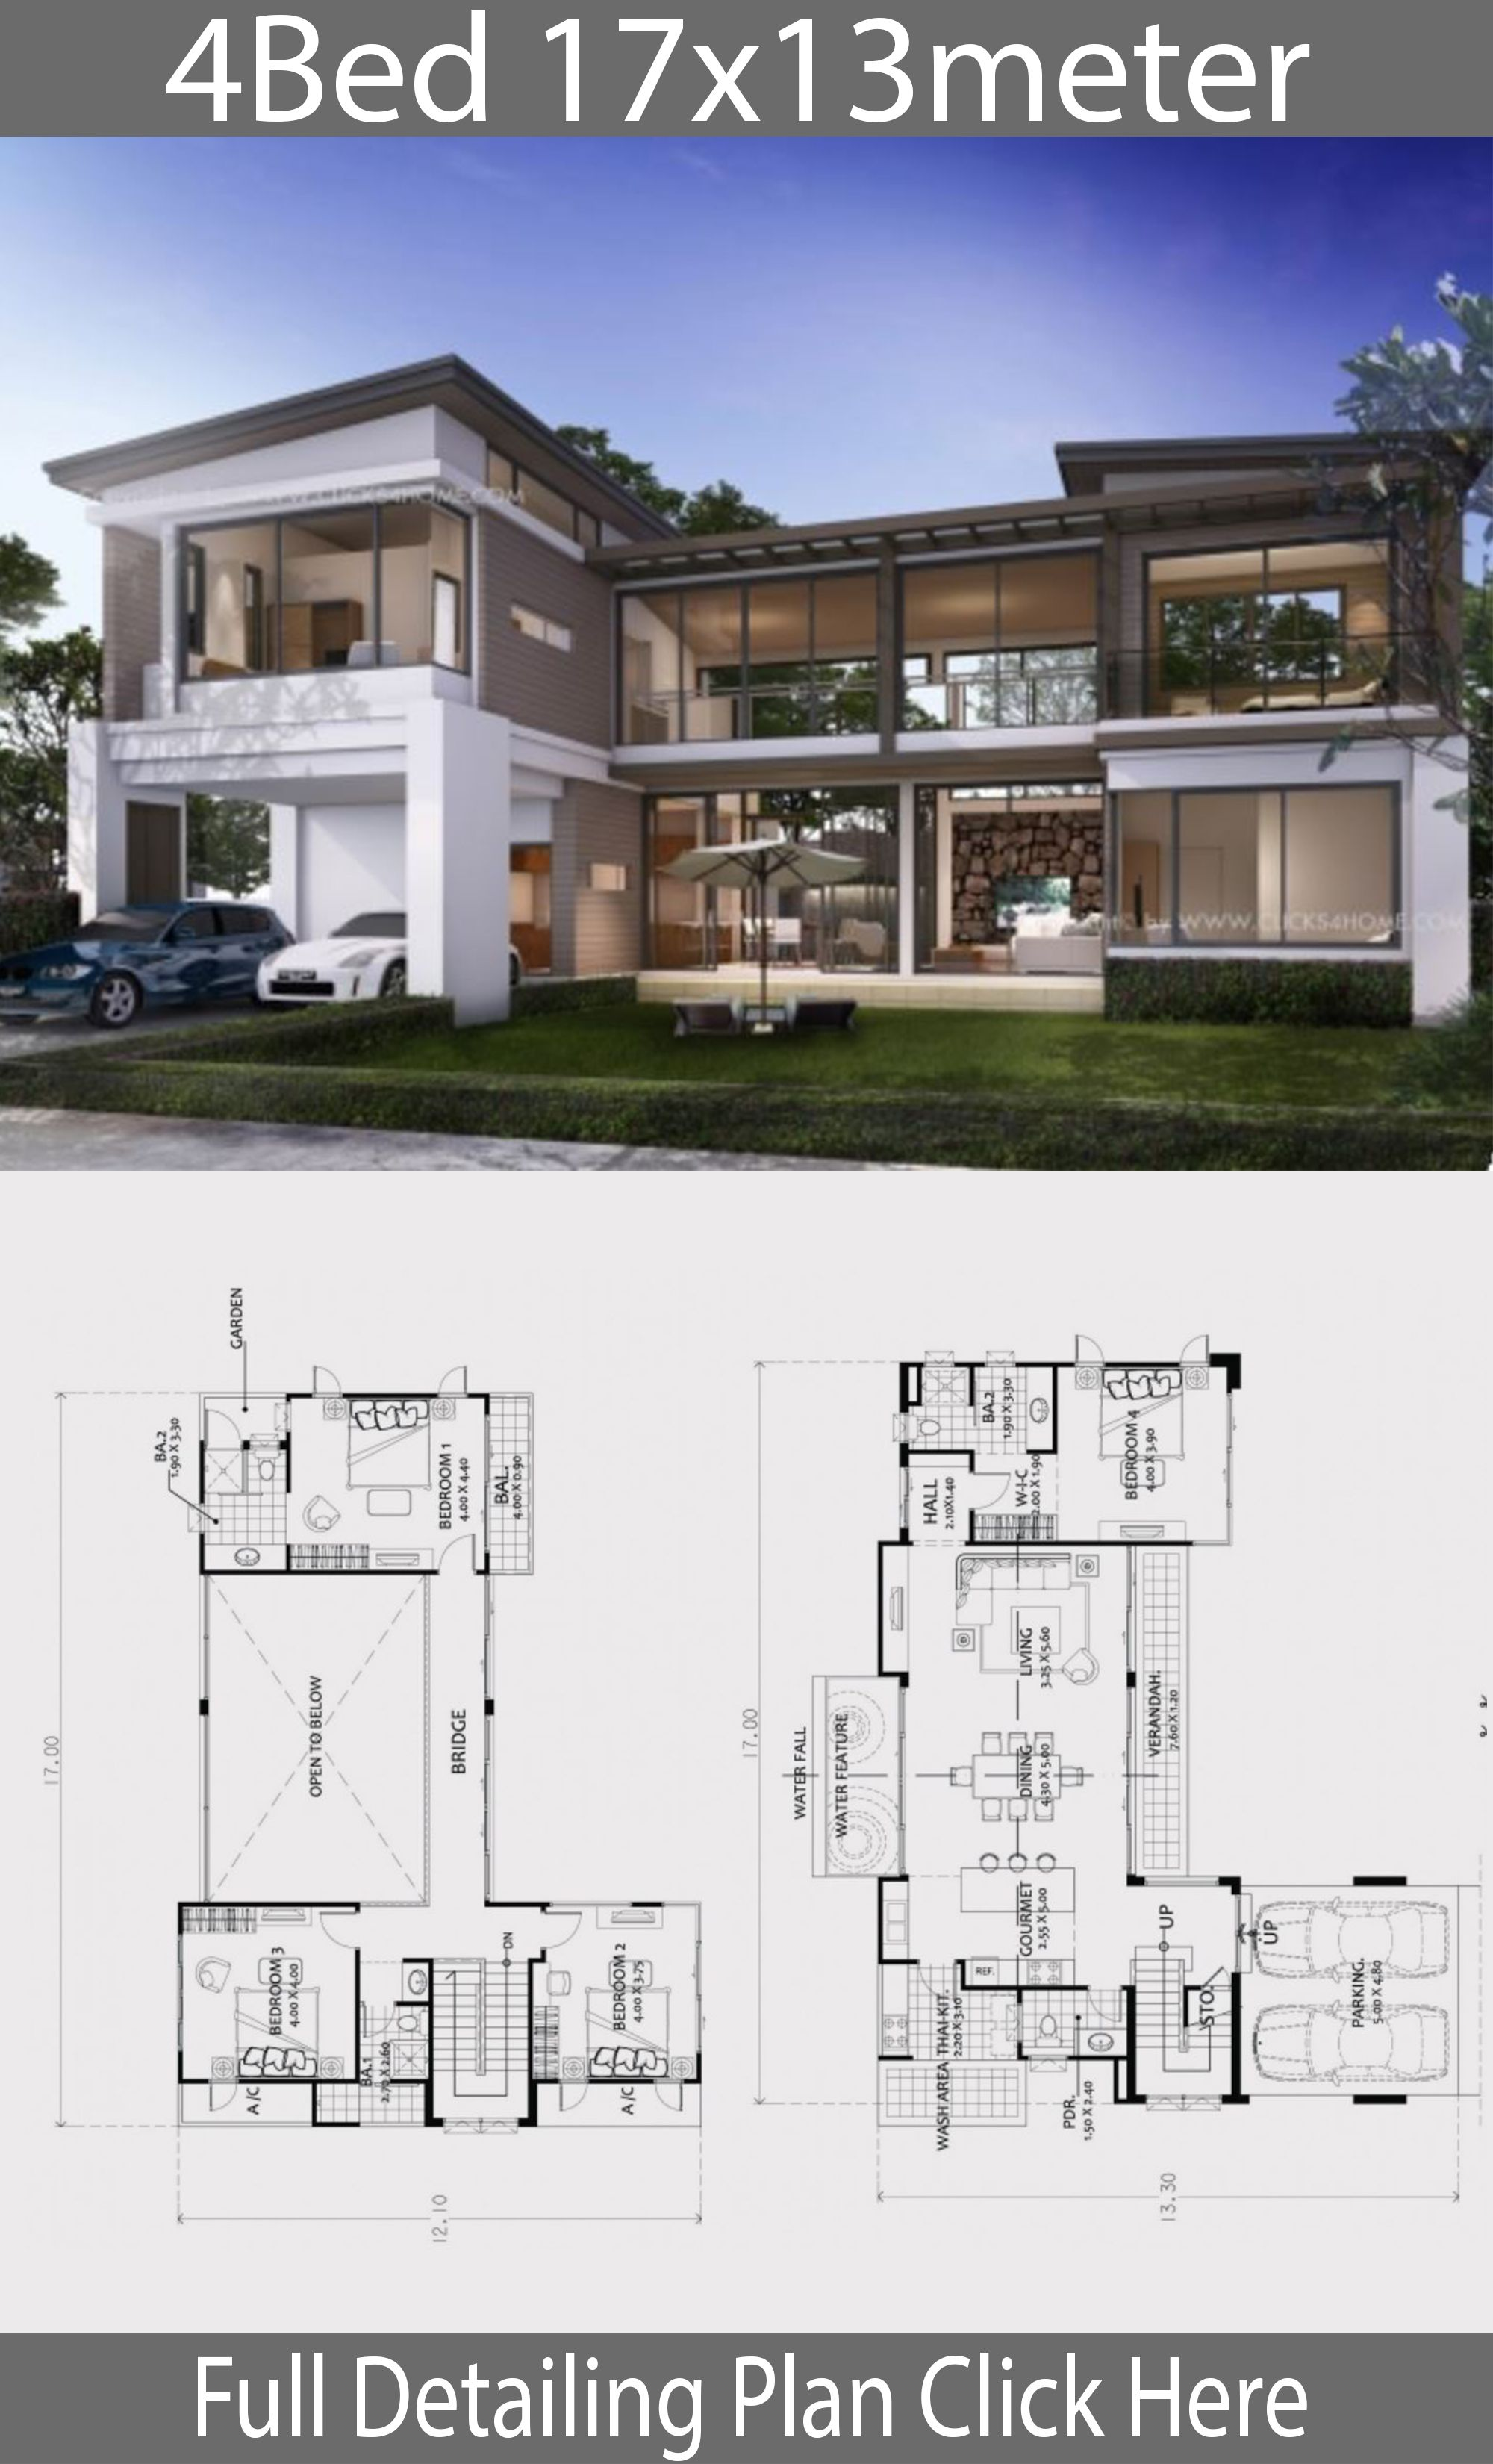 Home Design Plan 17x13m With 4 Bedroom House Idea In 2020 Beautiful House Plans Model House Plan Modern House Floor Plans